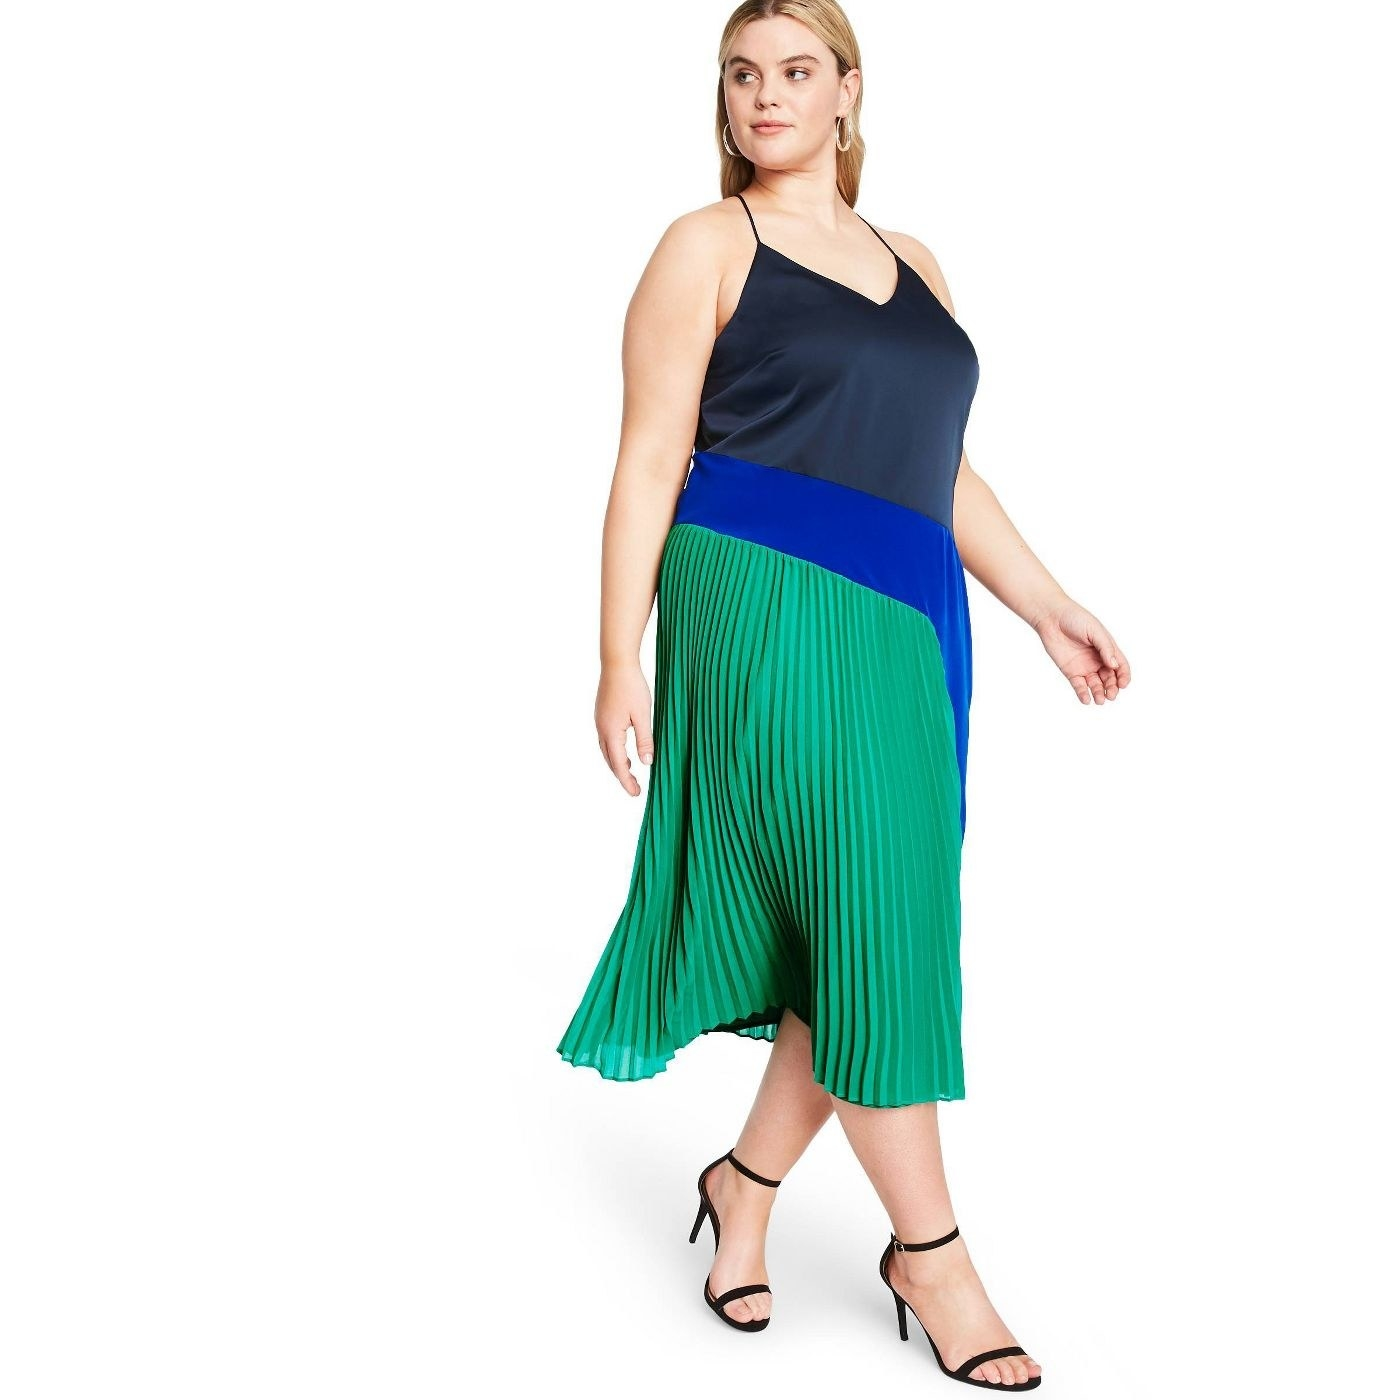 model wearing pleated tank dress with green, blue, and black colorblock